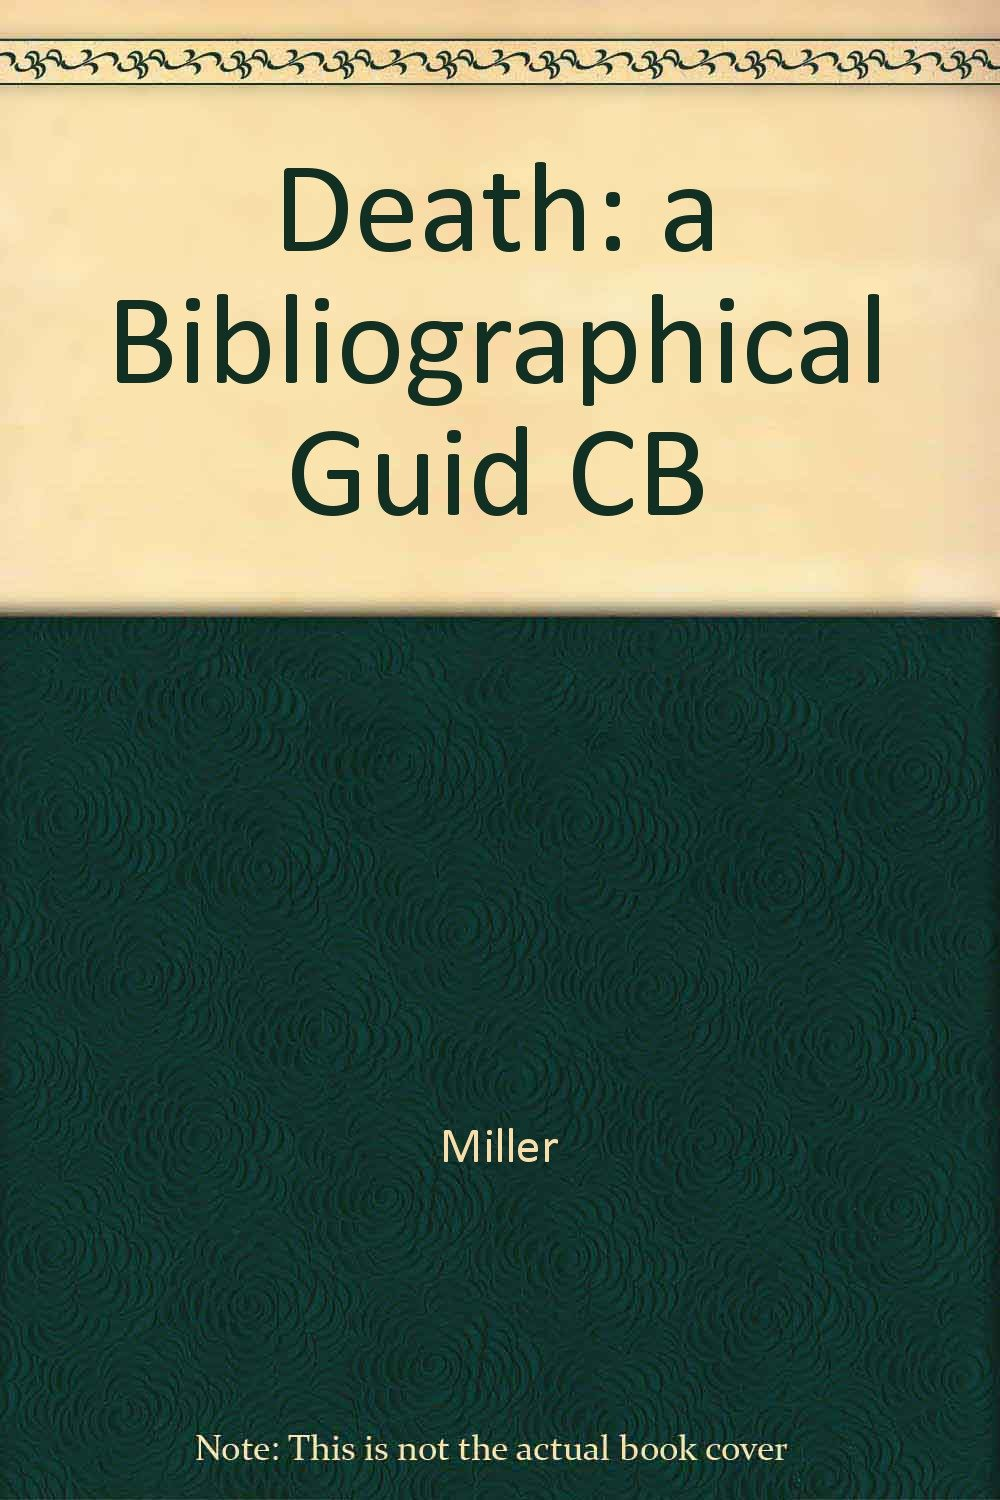 Death: a Bibliographical Guid CB, Miller